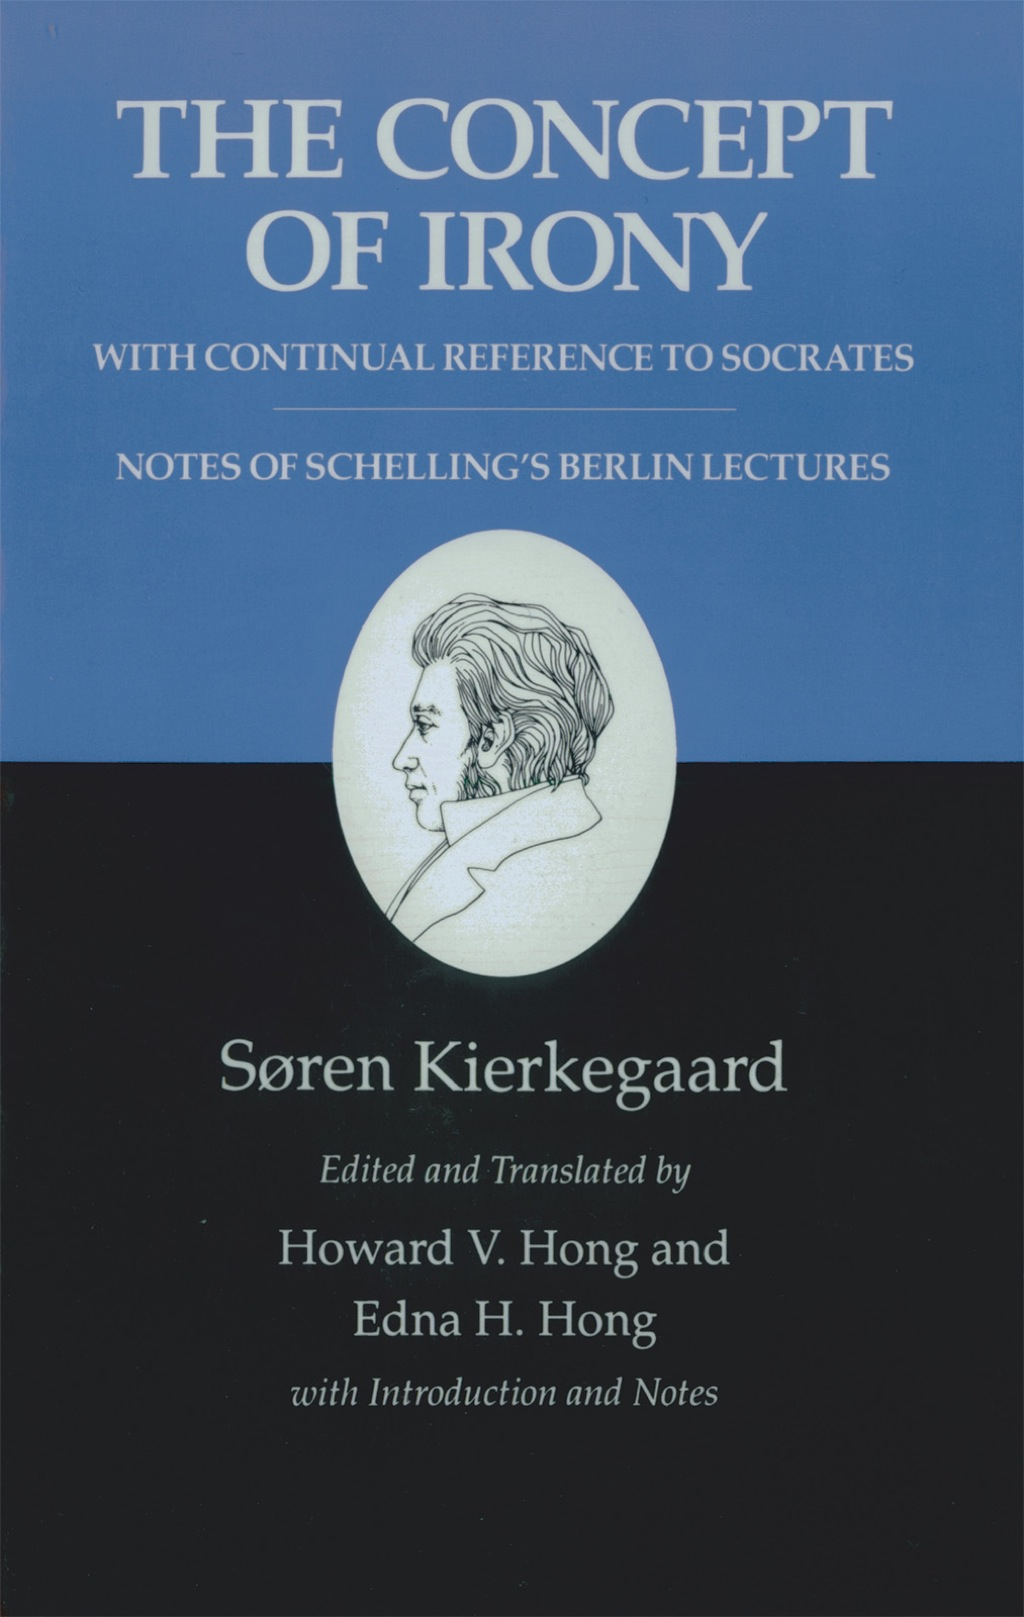 Kierkegaard's Writings, II, Volume 2: The Concept of Irony, with Continual Reference to Socrates/Notes of Schelling's Berlin Lectures (ebook) eBooks